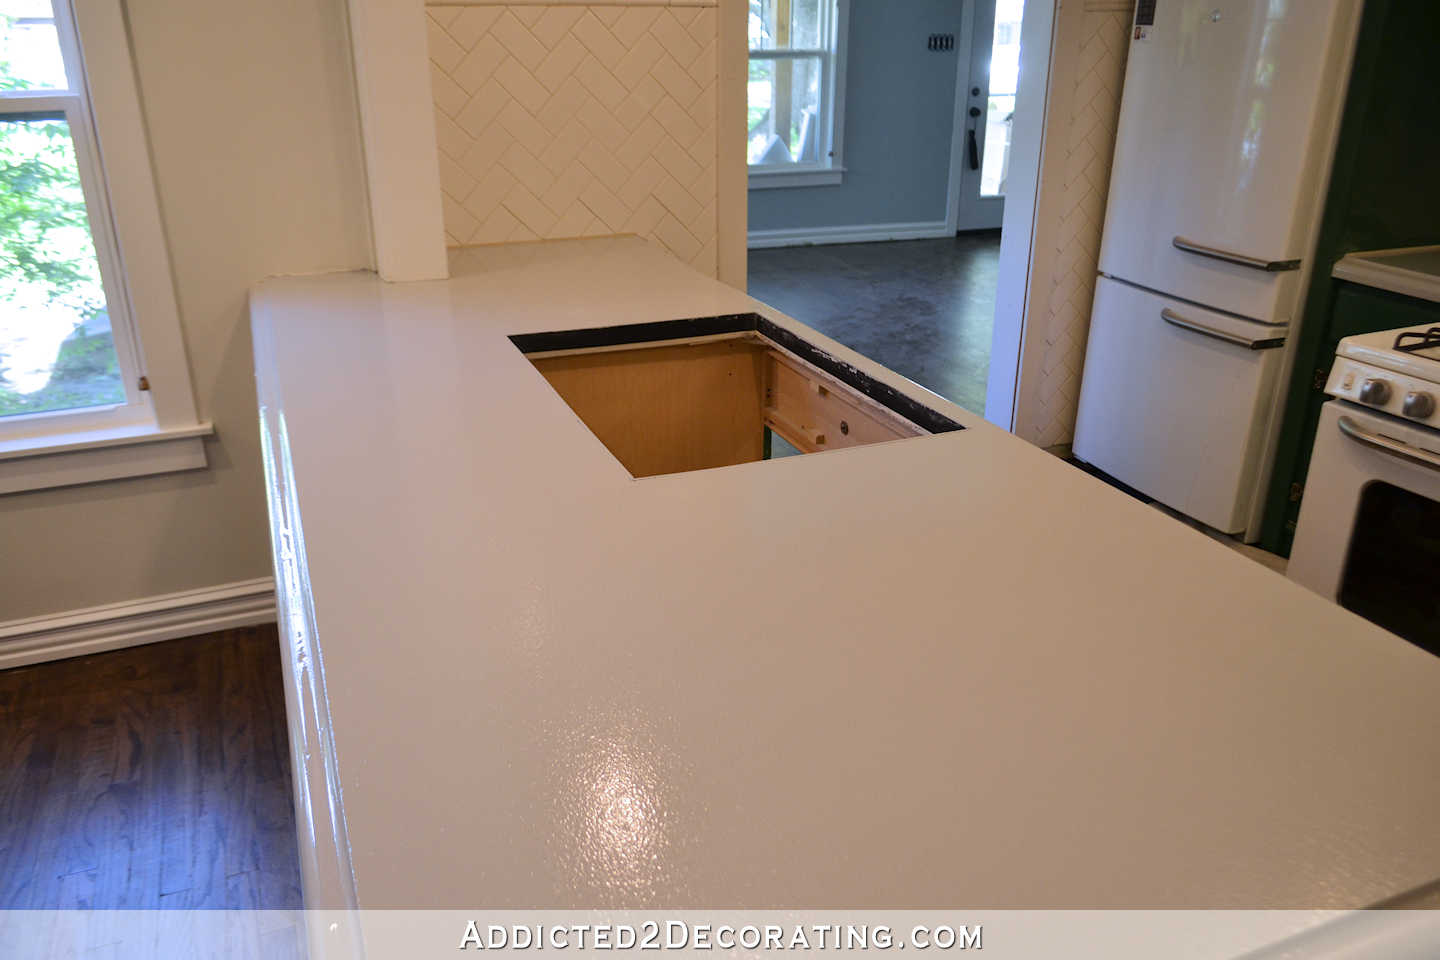 Concrete Countertops Pricing Refinishing My Concrete Kitchen Countertops Part 1 Of 3